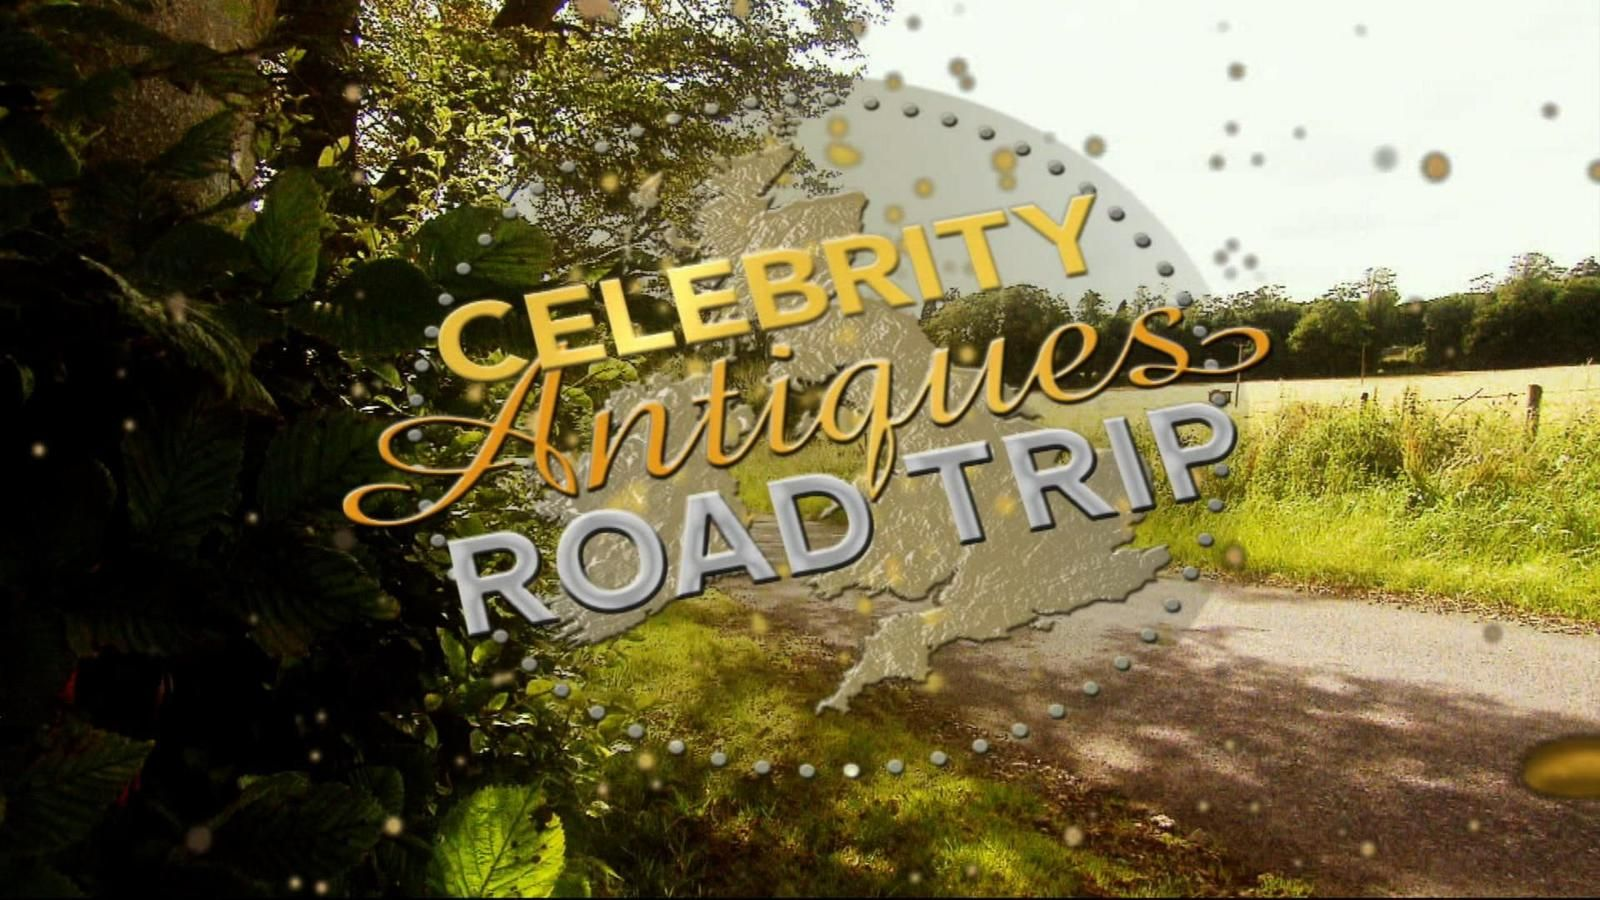 ���� - BBC Two is yet to renew Celebrity Antiques Road Trip for series 7